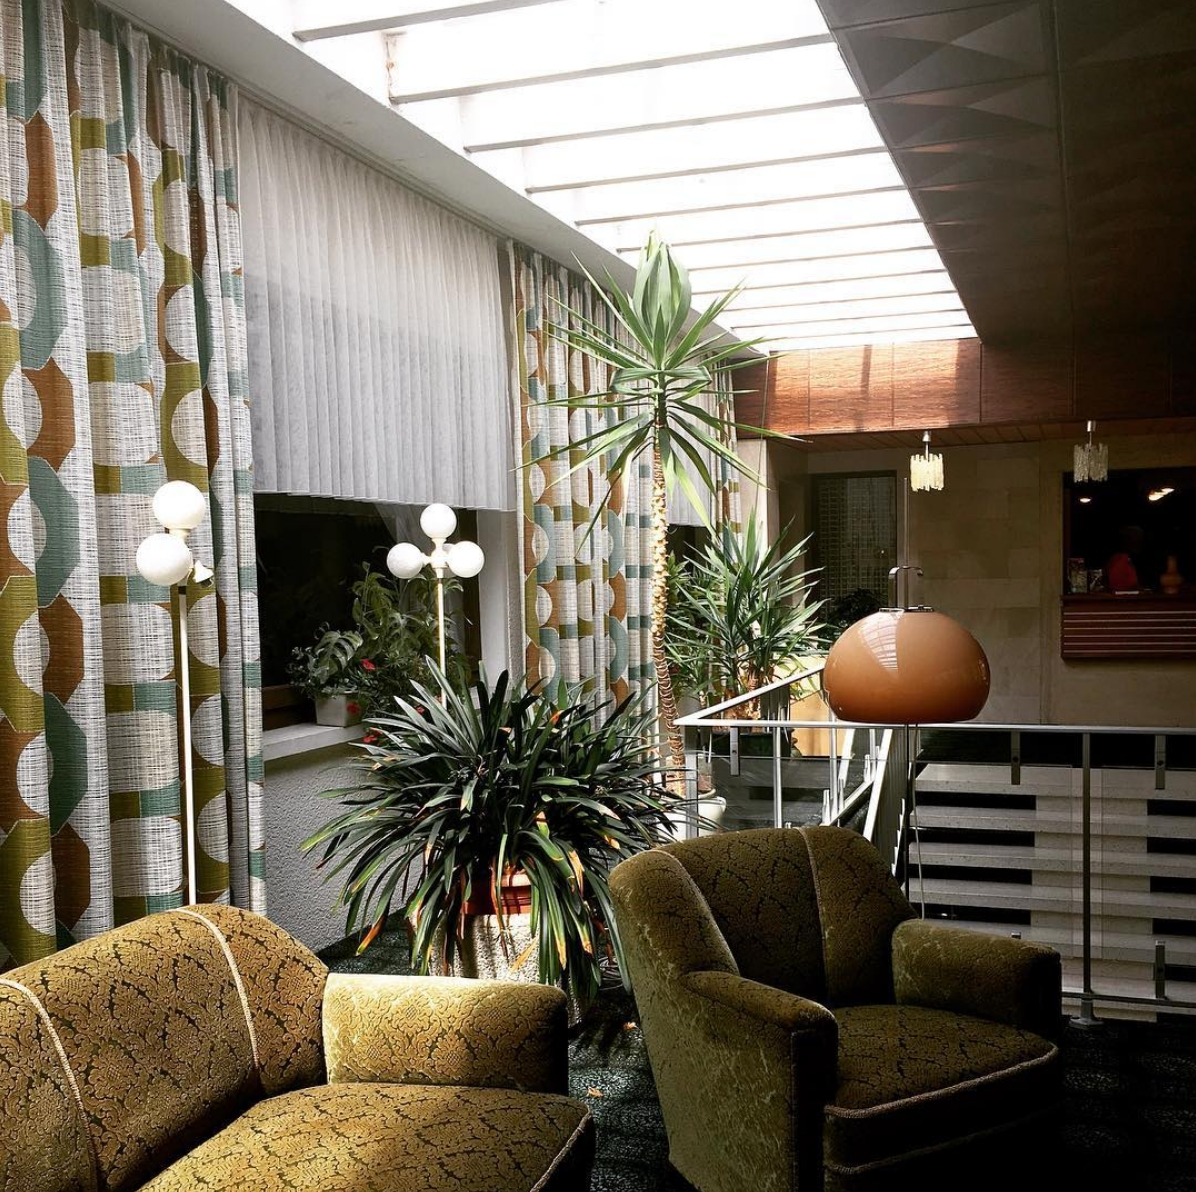 Time travel with #parkhotel1970 #livingroom #architecture #vintagelove #interior